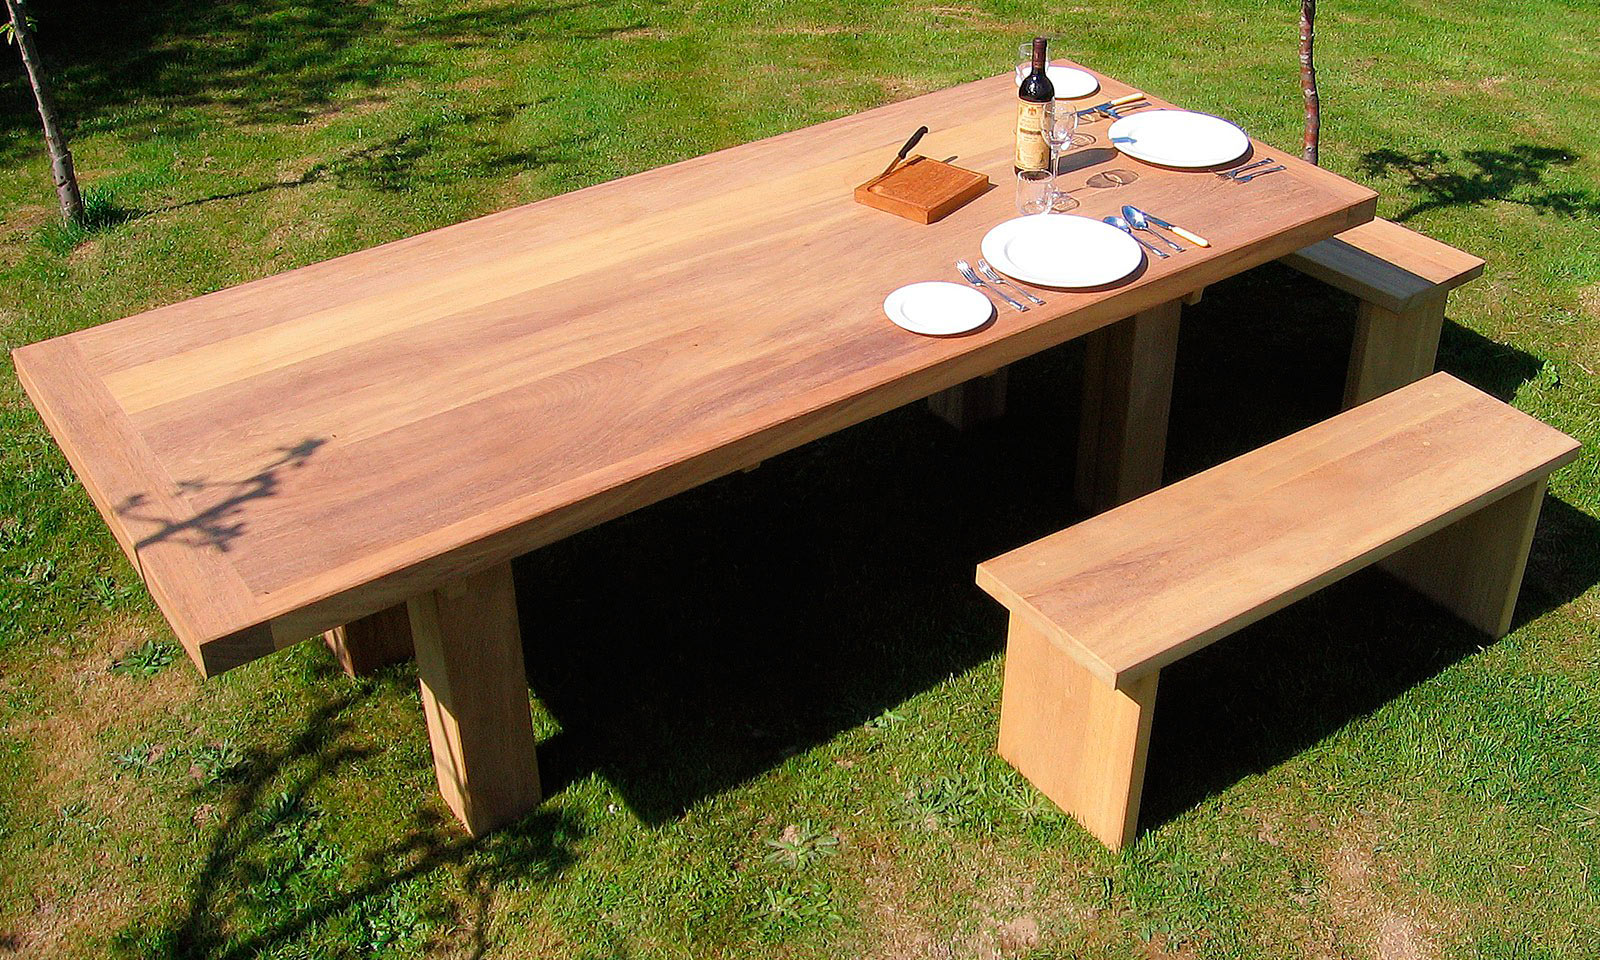 Iroko Table, with matching bench seats. A bespoke, handmade garden table manufactured out of Iroko hardwood. Quality hand-crafted exterior furniture designed and built by Mounts Hill Woodcraft.